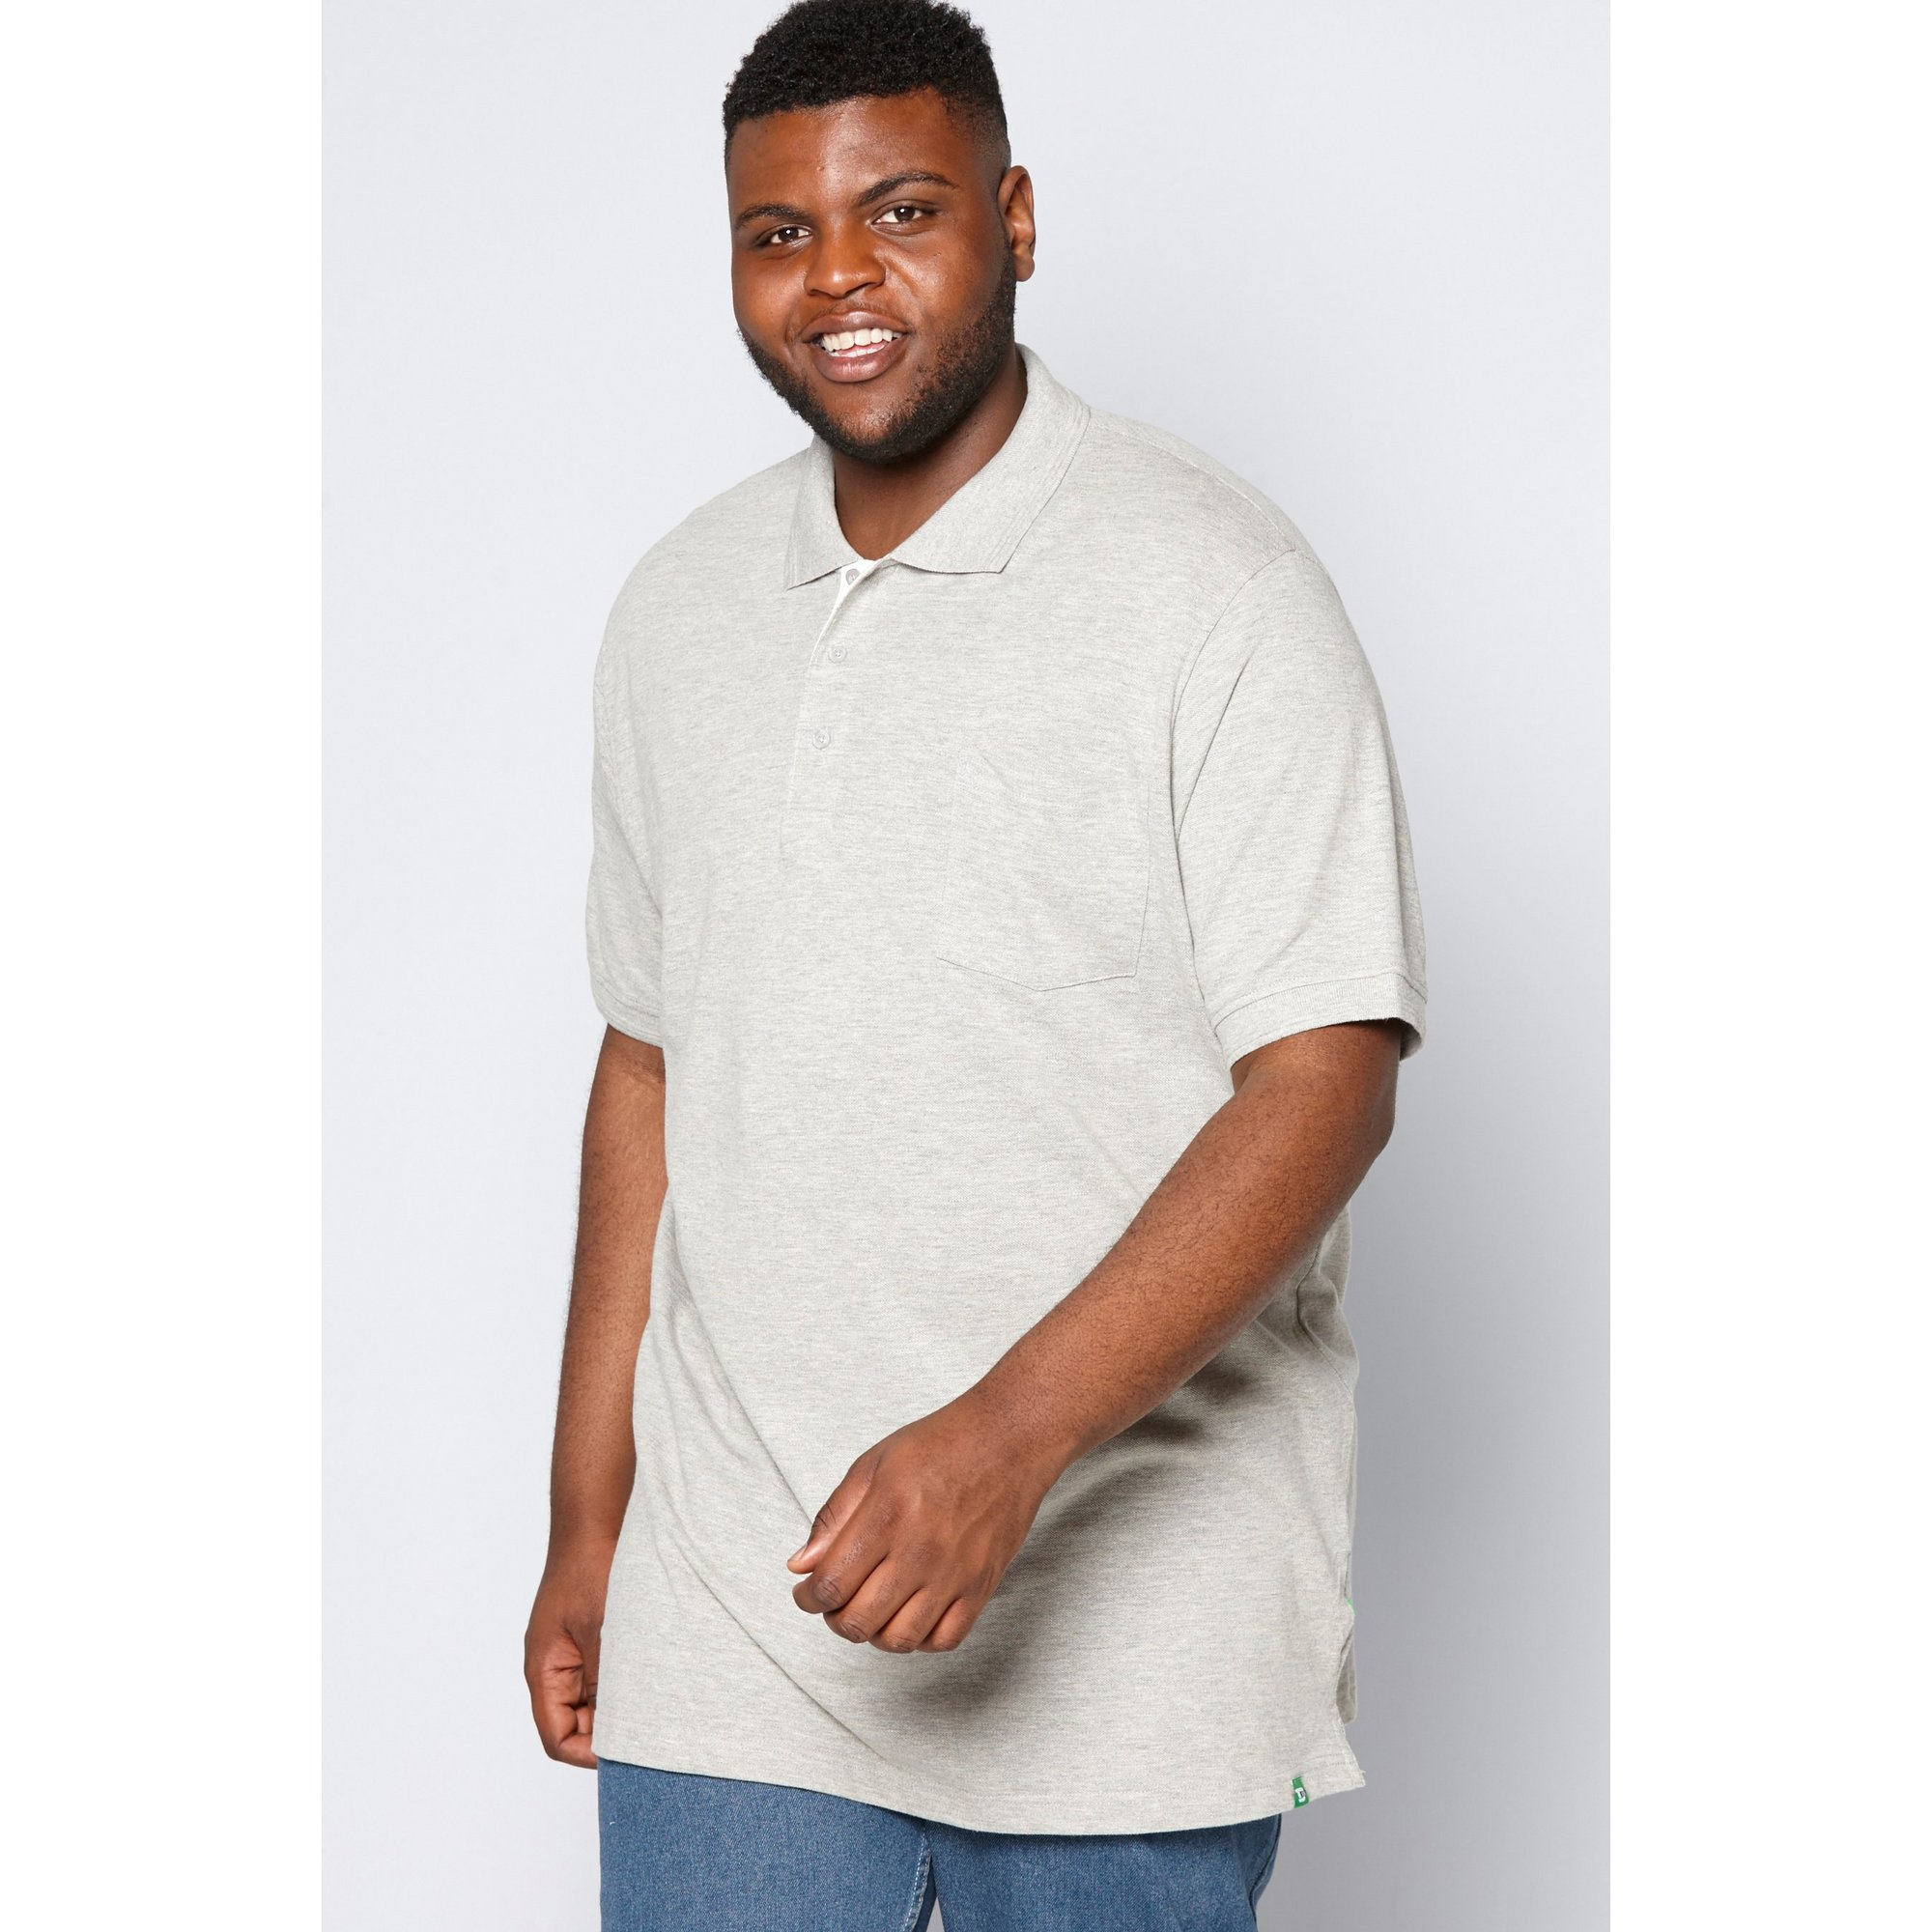 Image of D555 by Duke Big and Tall Pique Polo Shirt